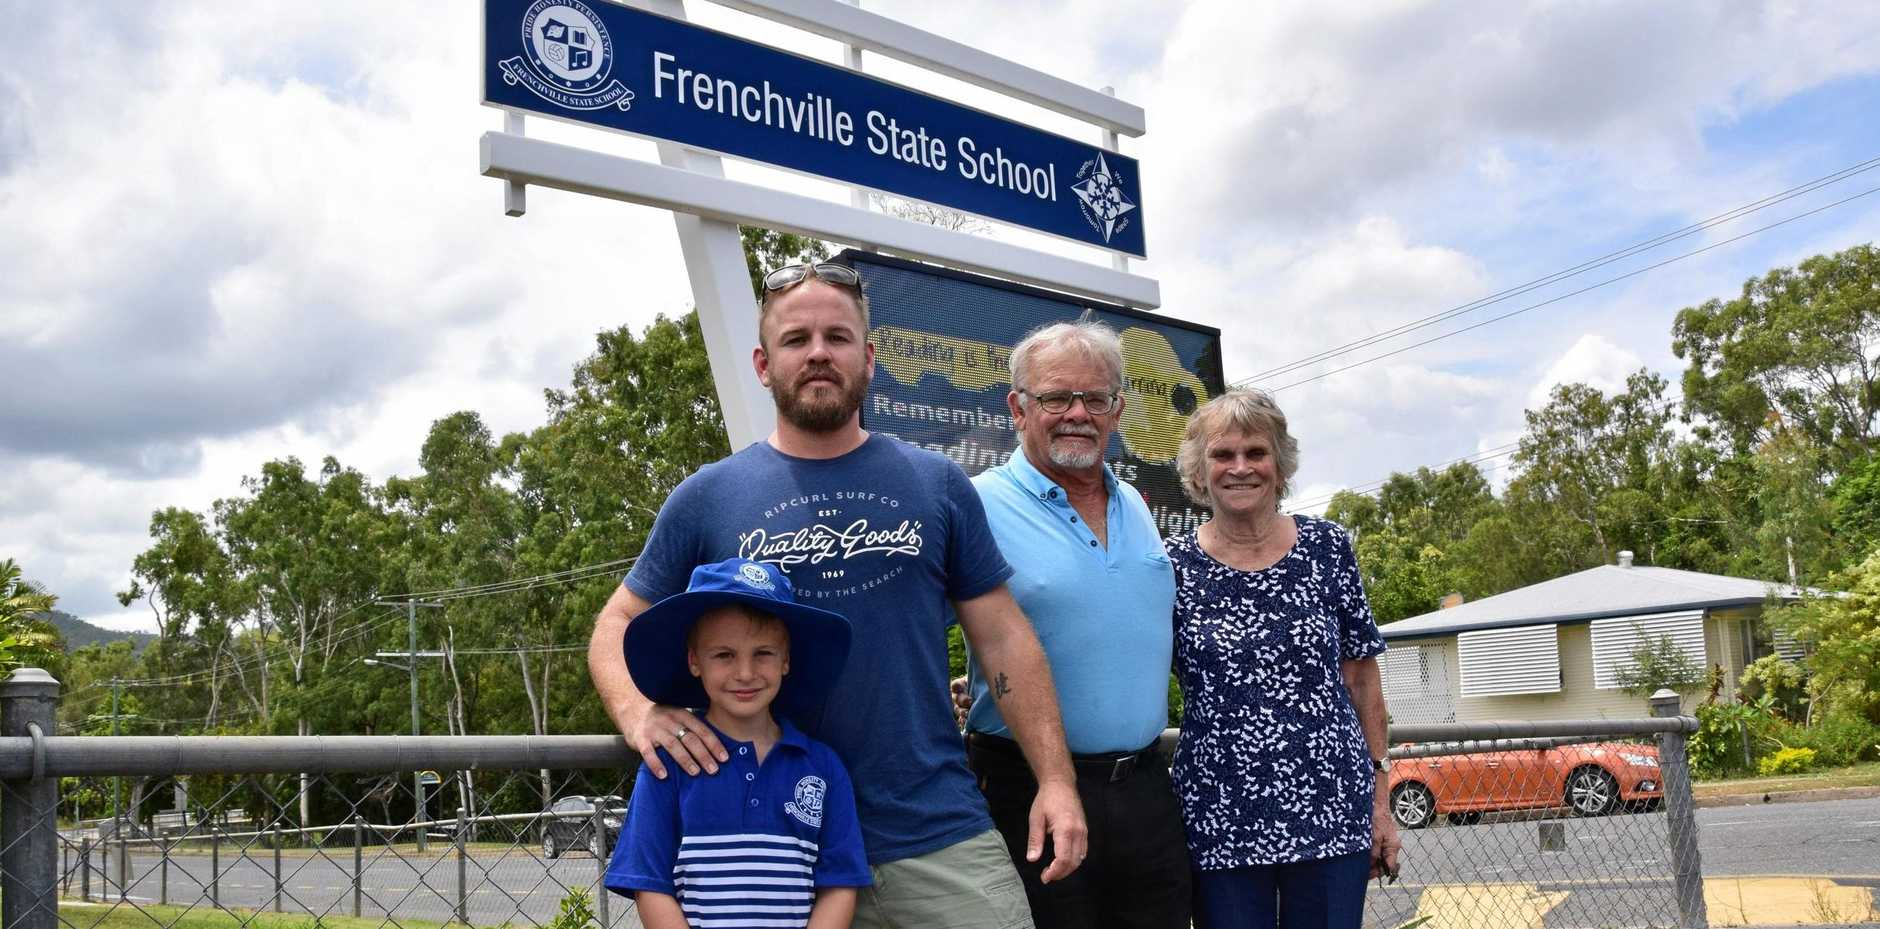 TRADITION: (From left) Braith Hermann, 5, Adam Hermann, 33, David Hermann, 65, and Janice Hutchinson (nee Hermann), 78, are four of the five generations of family who attended Frenchville State School after their ancestors used to own the land.